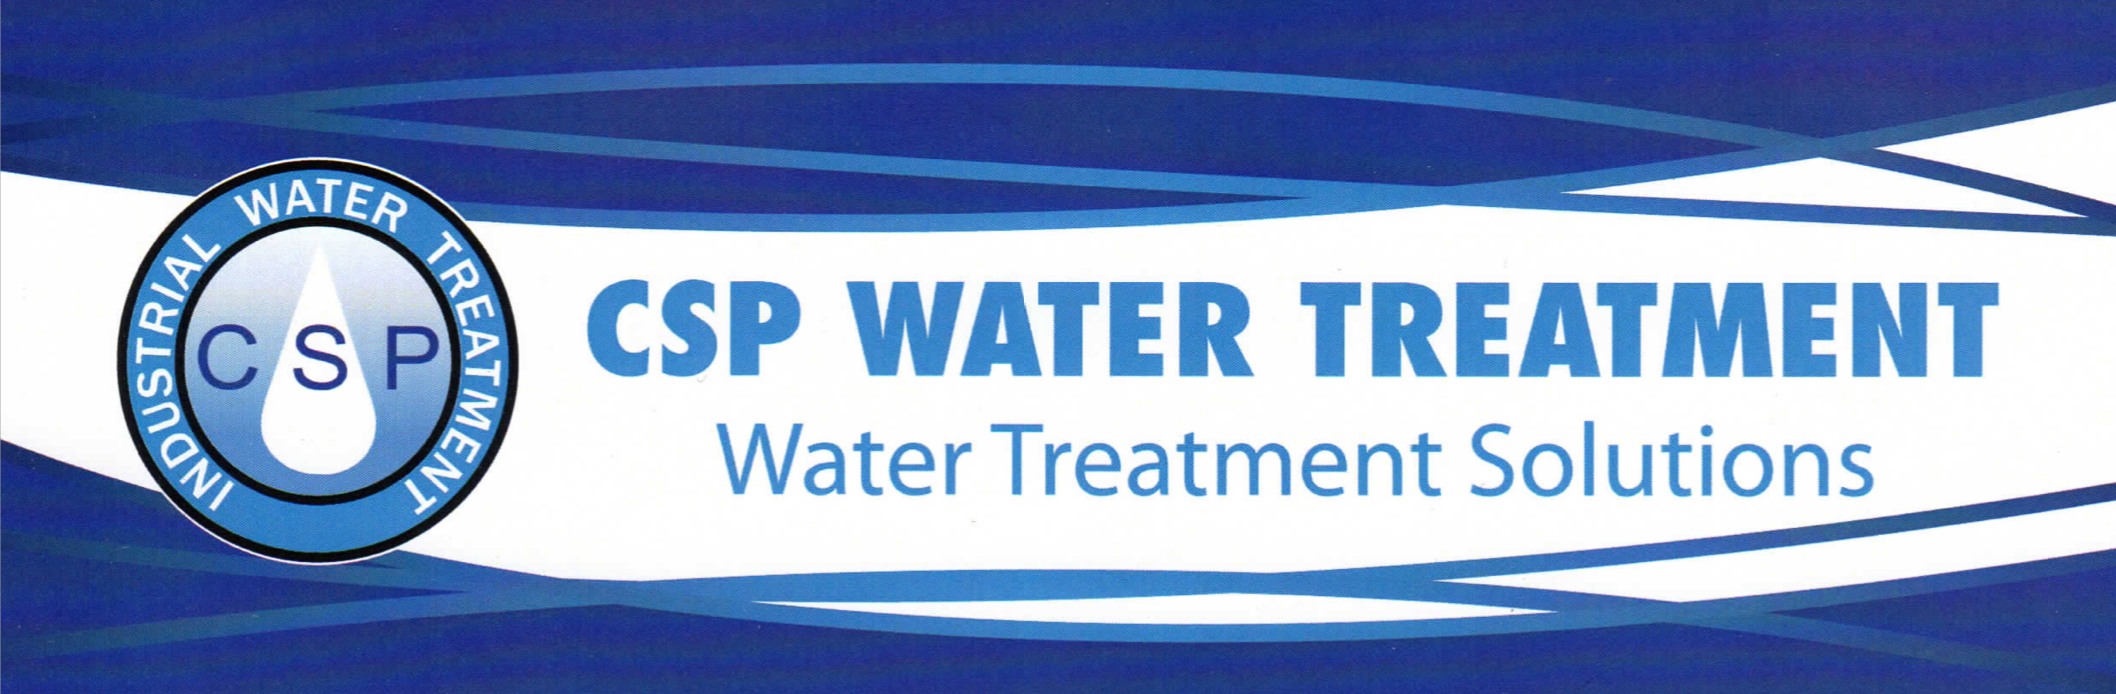 CSP Water Treatment